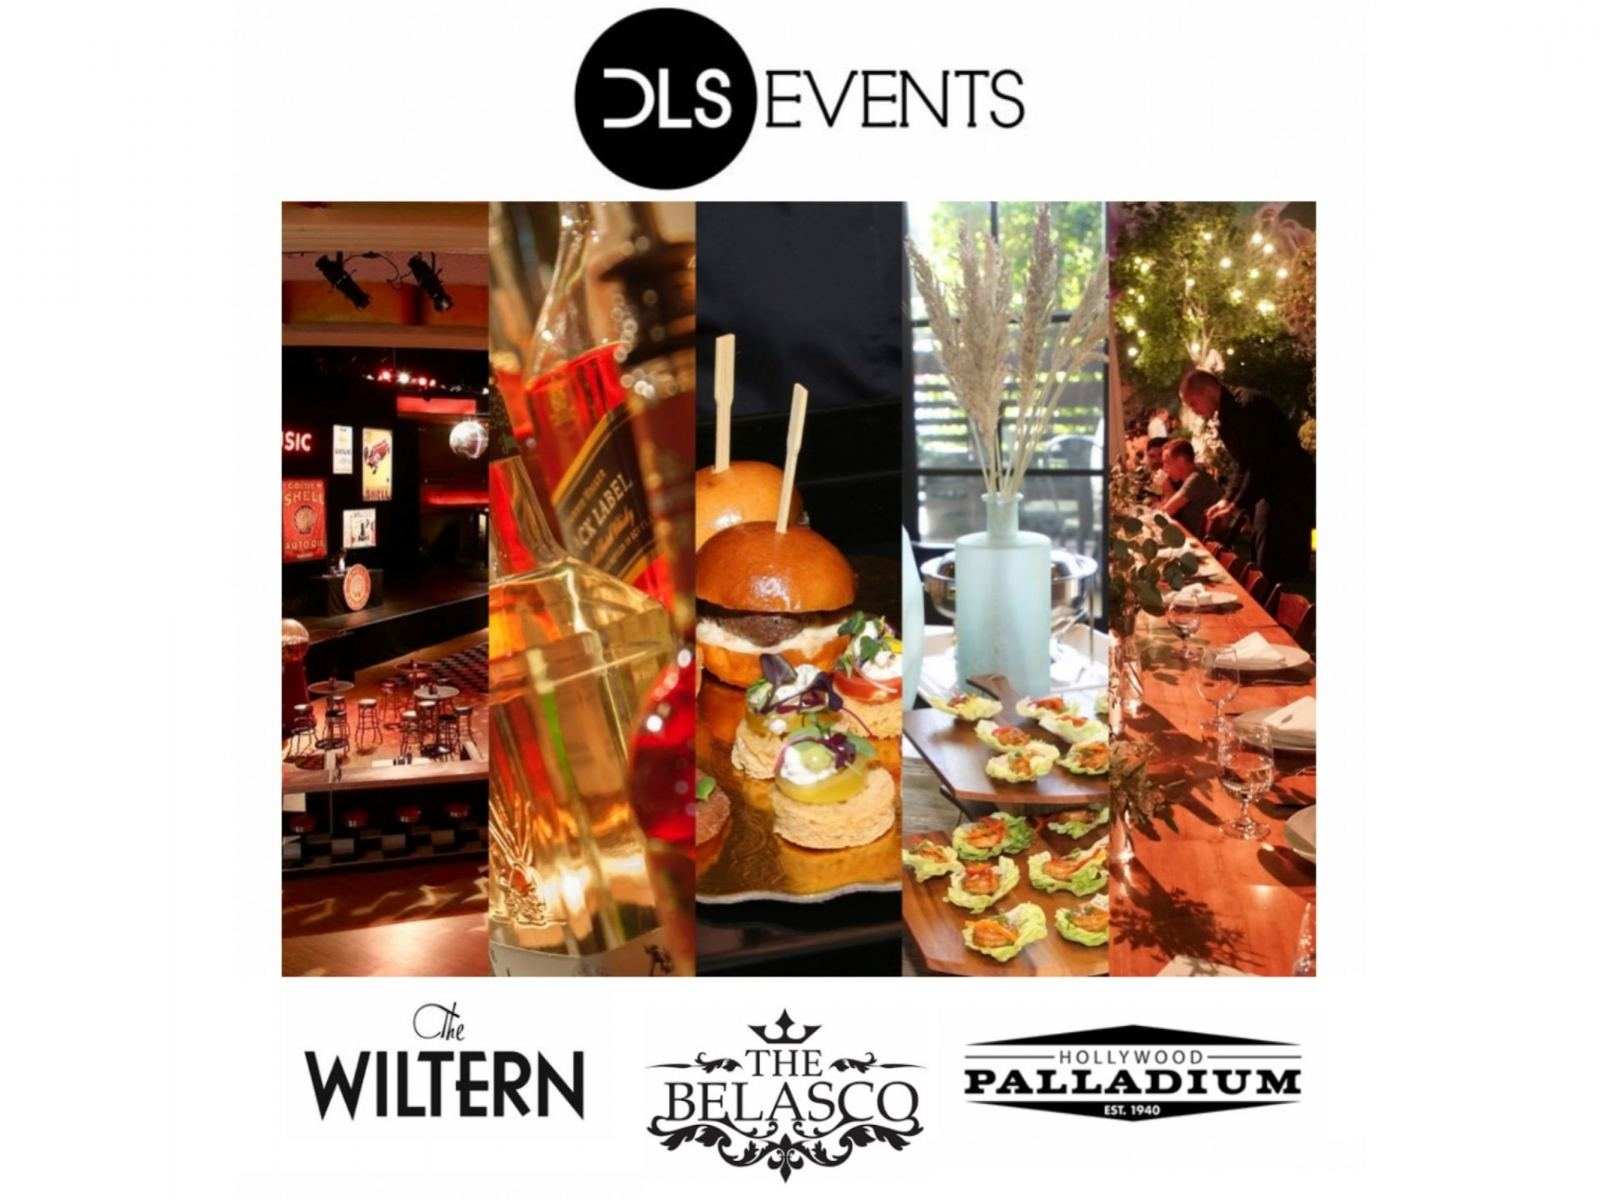 DLS EVENTS | LOS ANGELES, CA